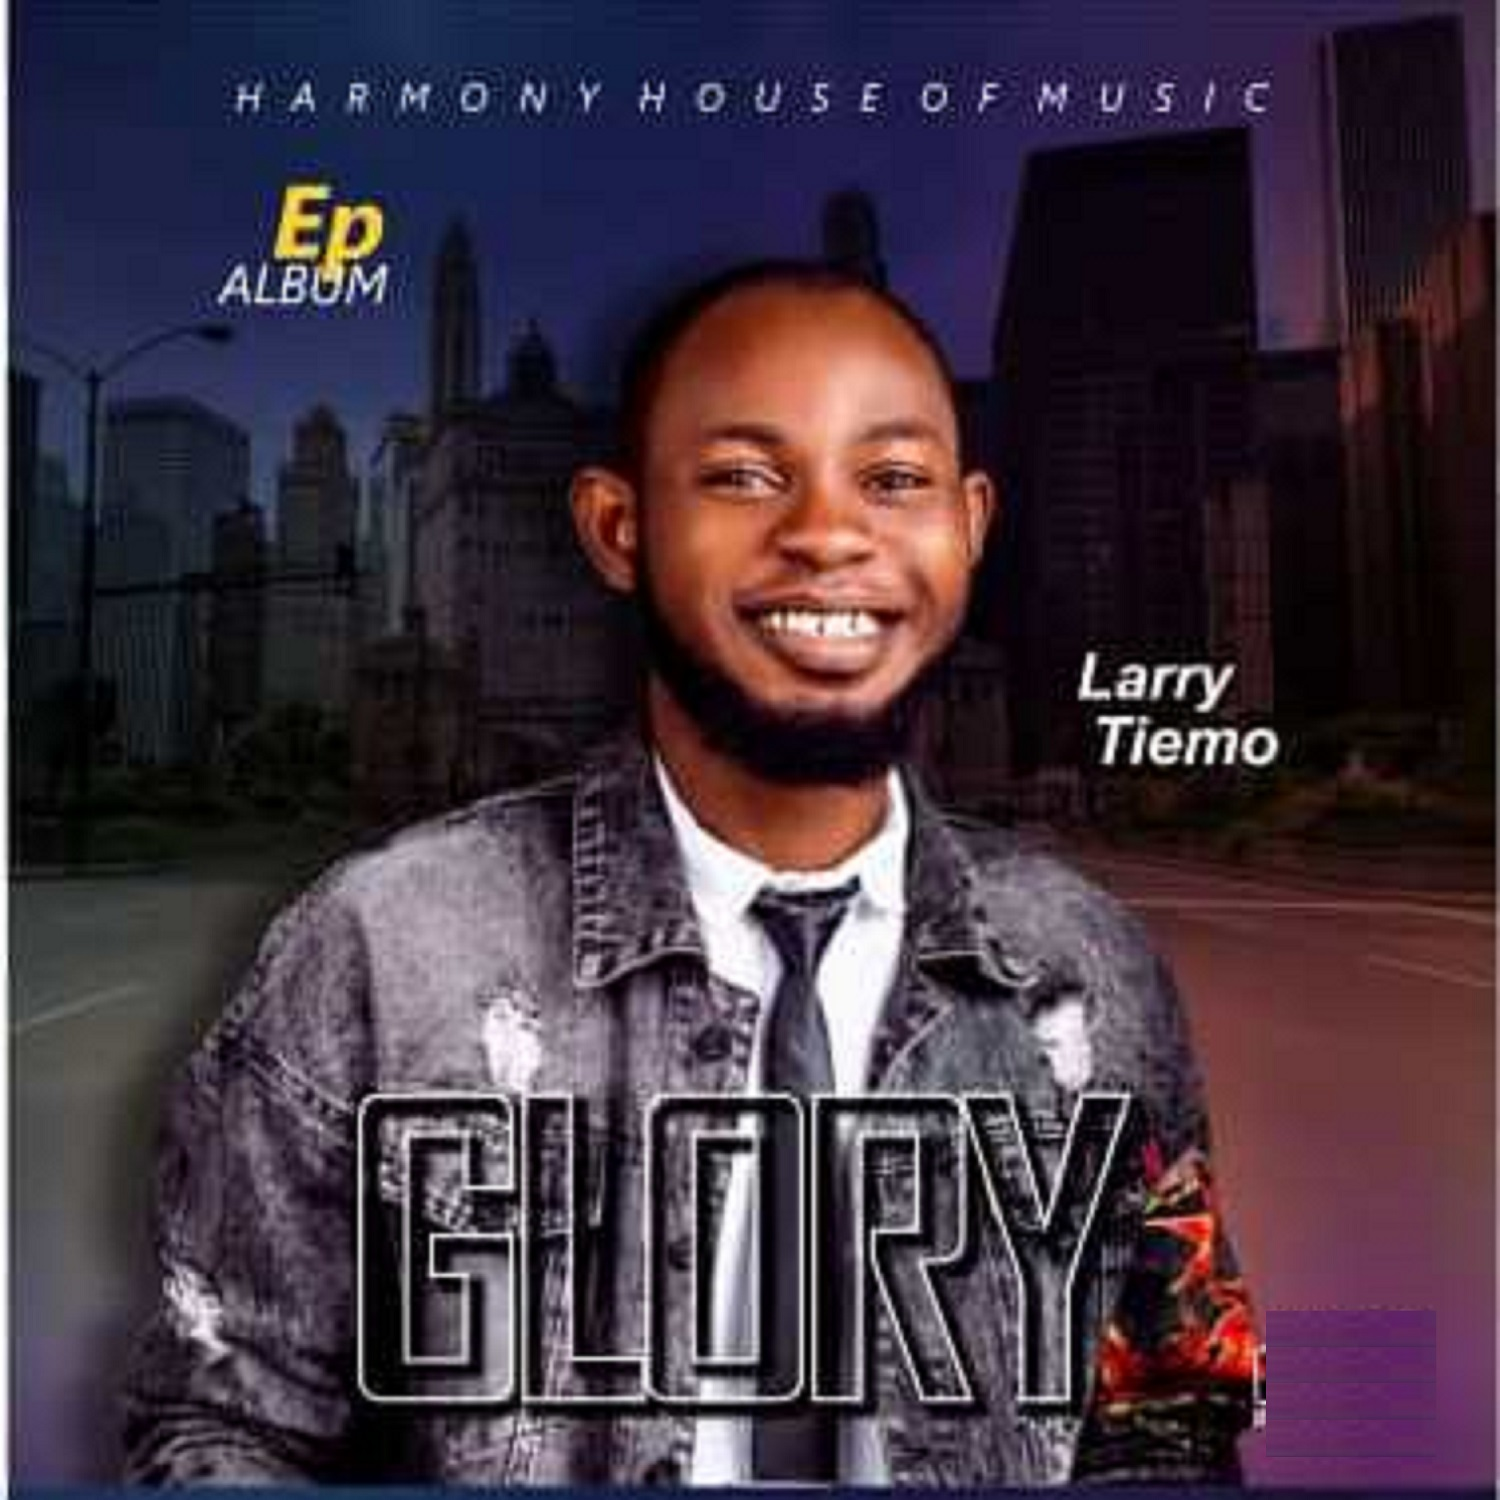 GLORY EP by Larry Tiemo